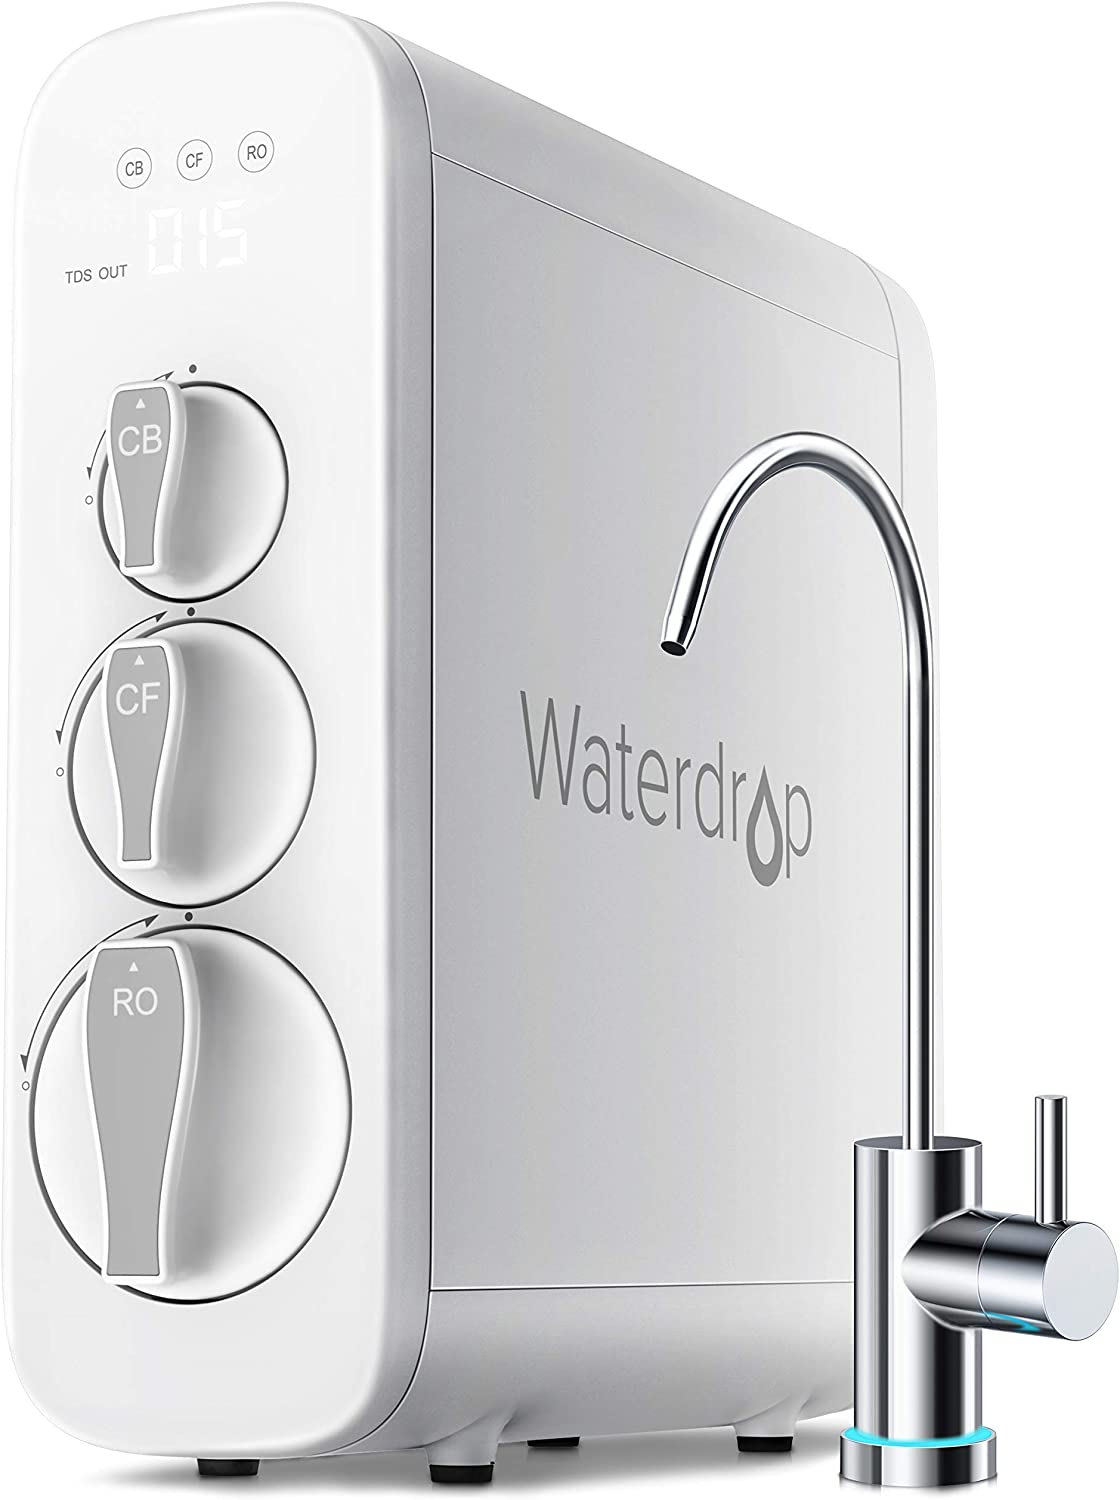 Waterdrop Reverse Osmosis Water Filtration System, TDS Reduction, 400 GPD Fast Flow, Tankless, Smart Faucet, UL Listed Power Cord, 1: 1 Drain Ratio, USA Tech Support (Renewed)